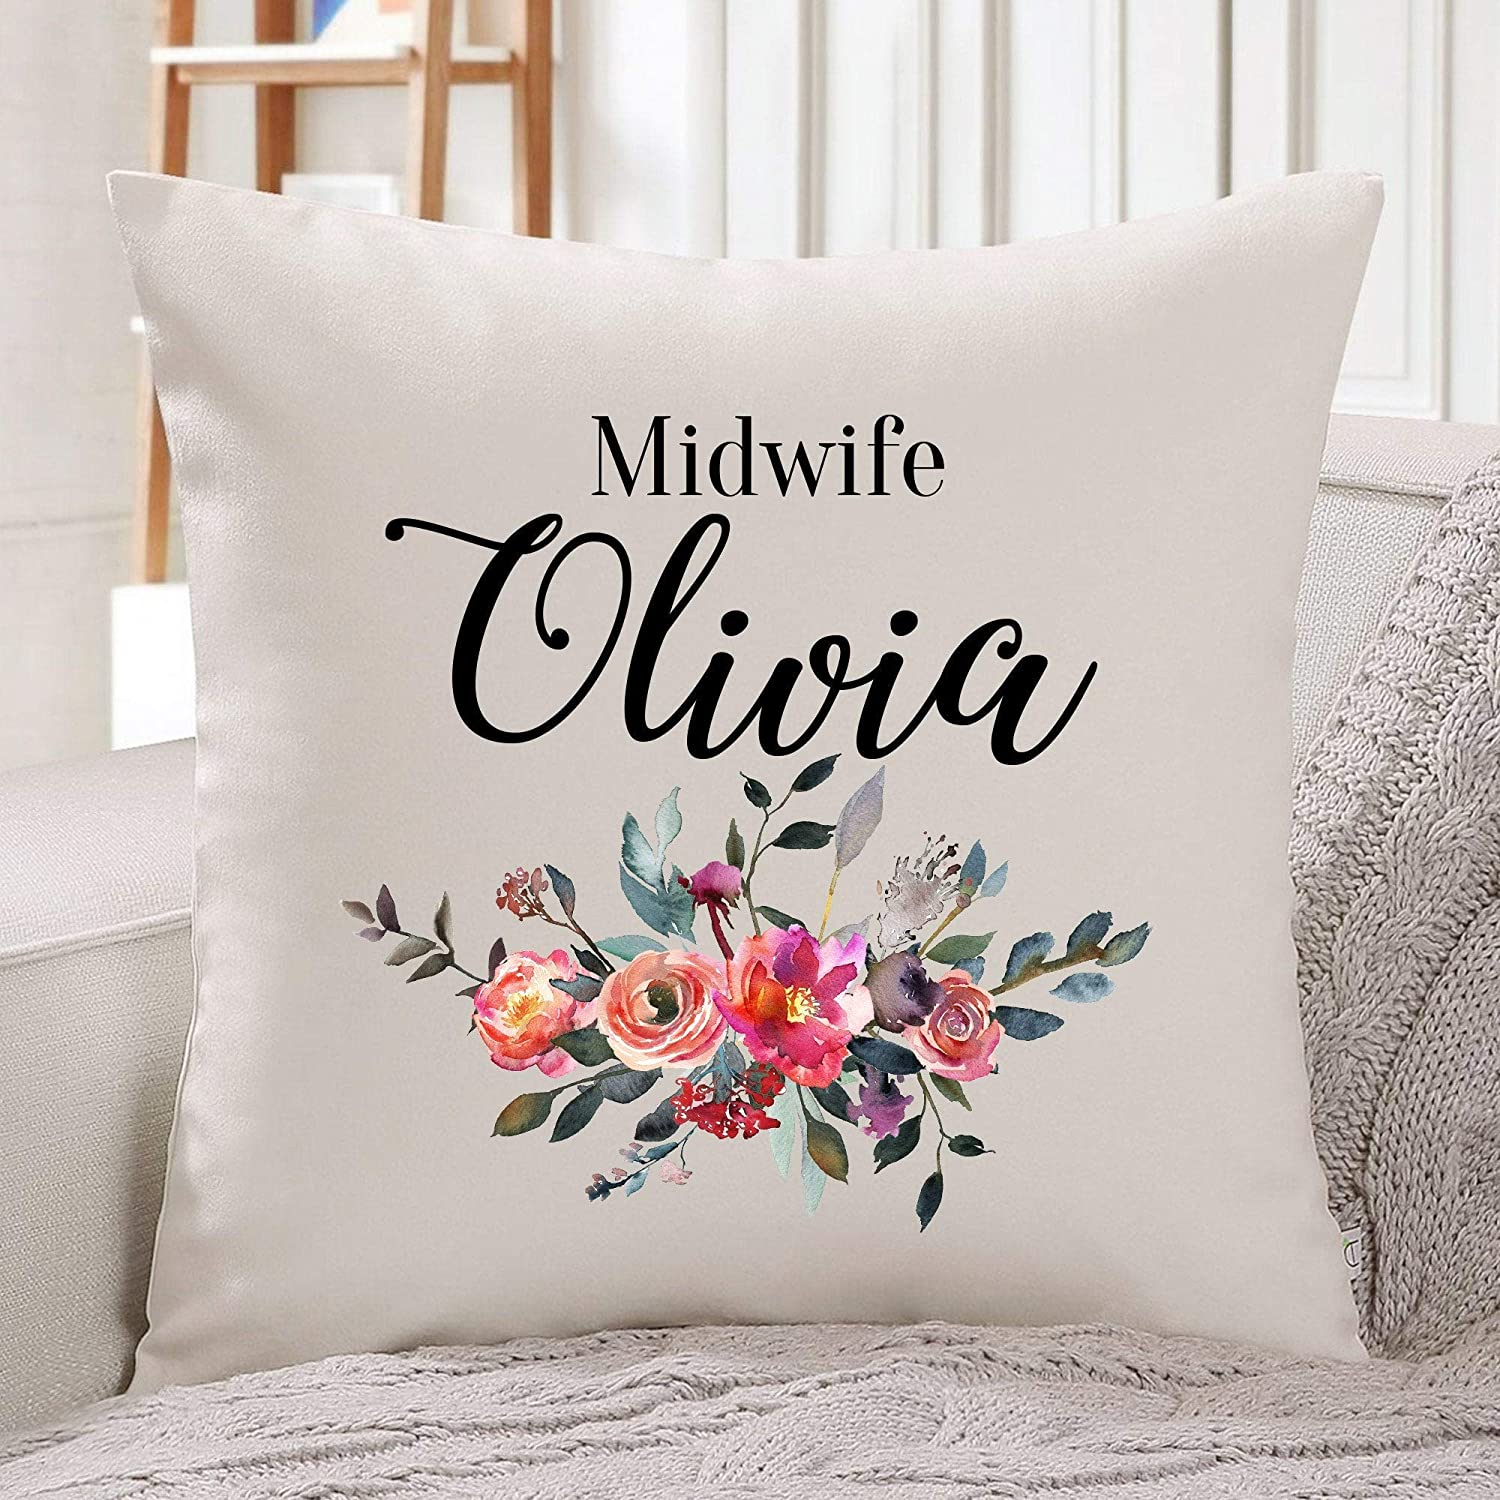 Personalised midwife cushion cover//Gift for midwife//Midwife Thank You Gift//Gift Ideas//Flower design//Floral concept